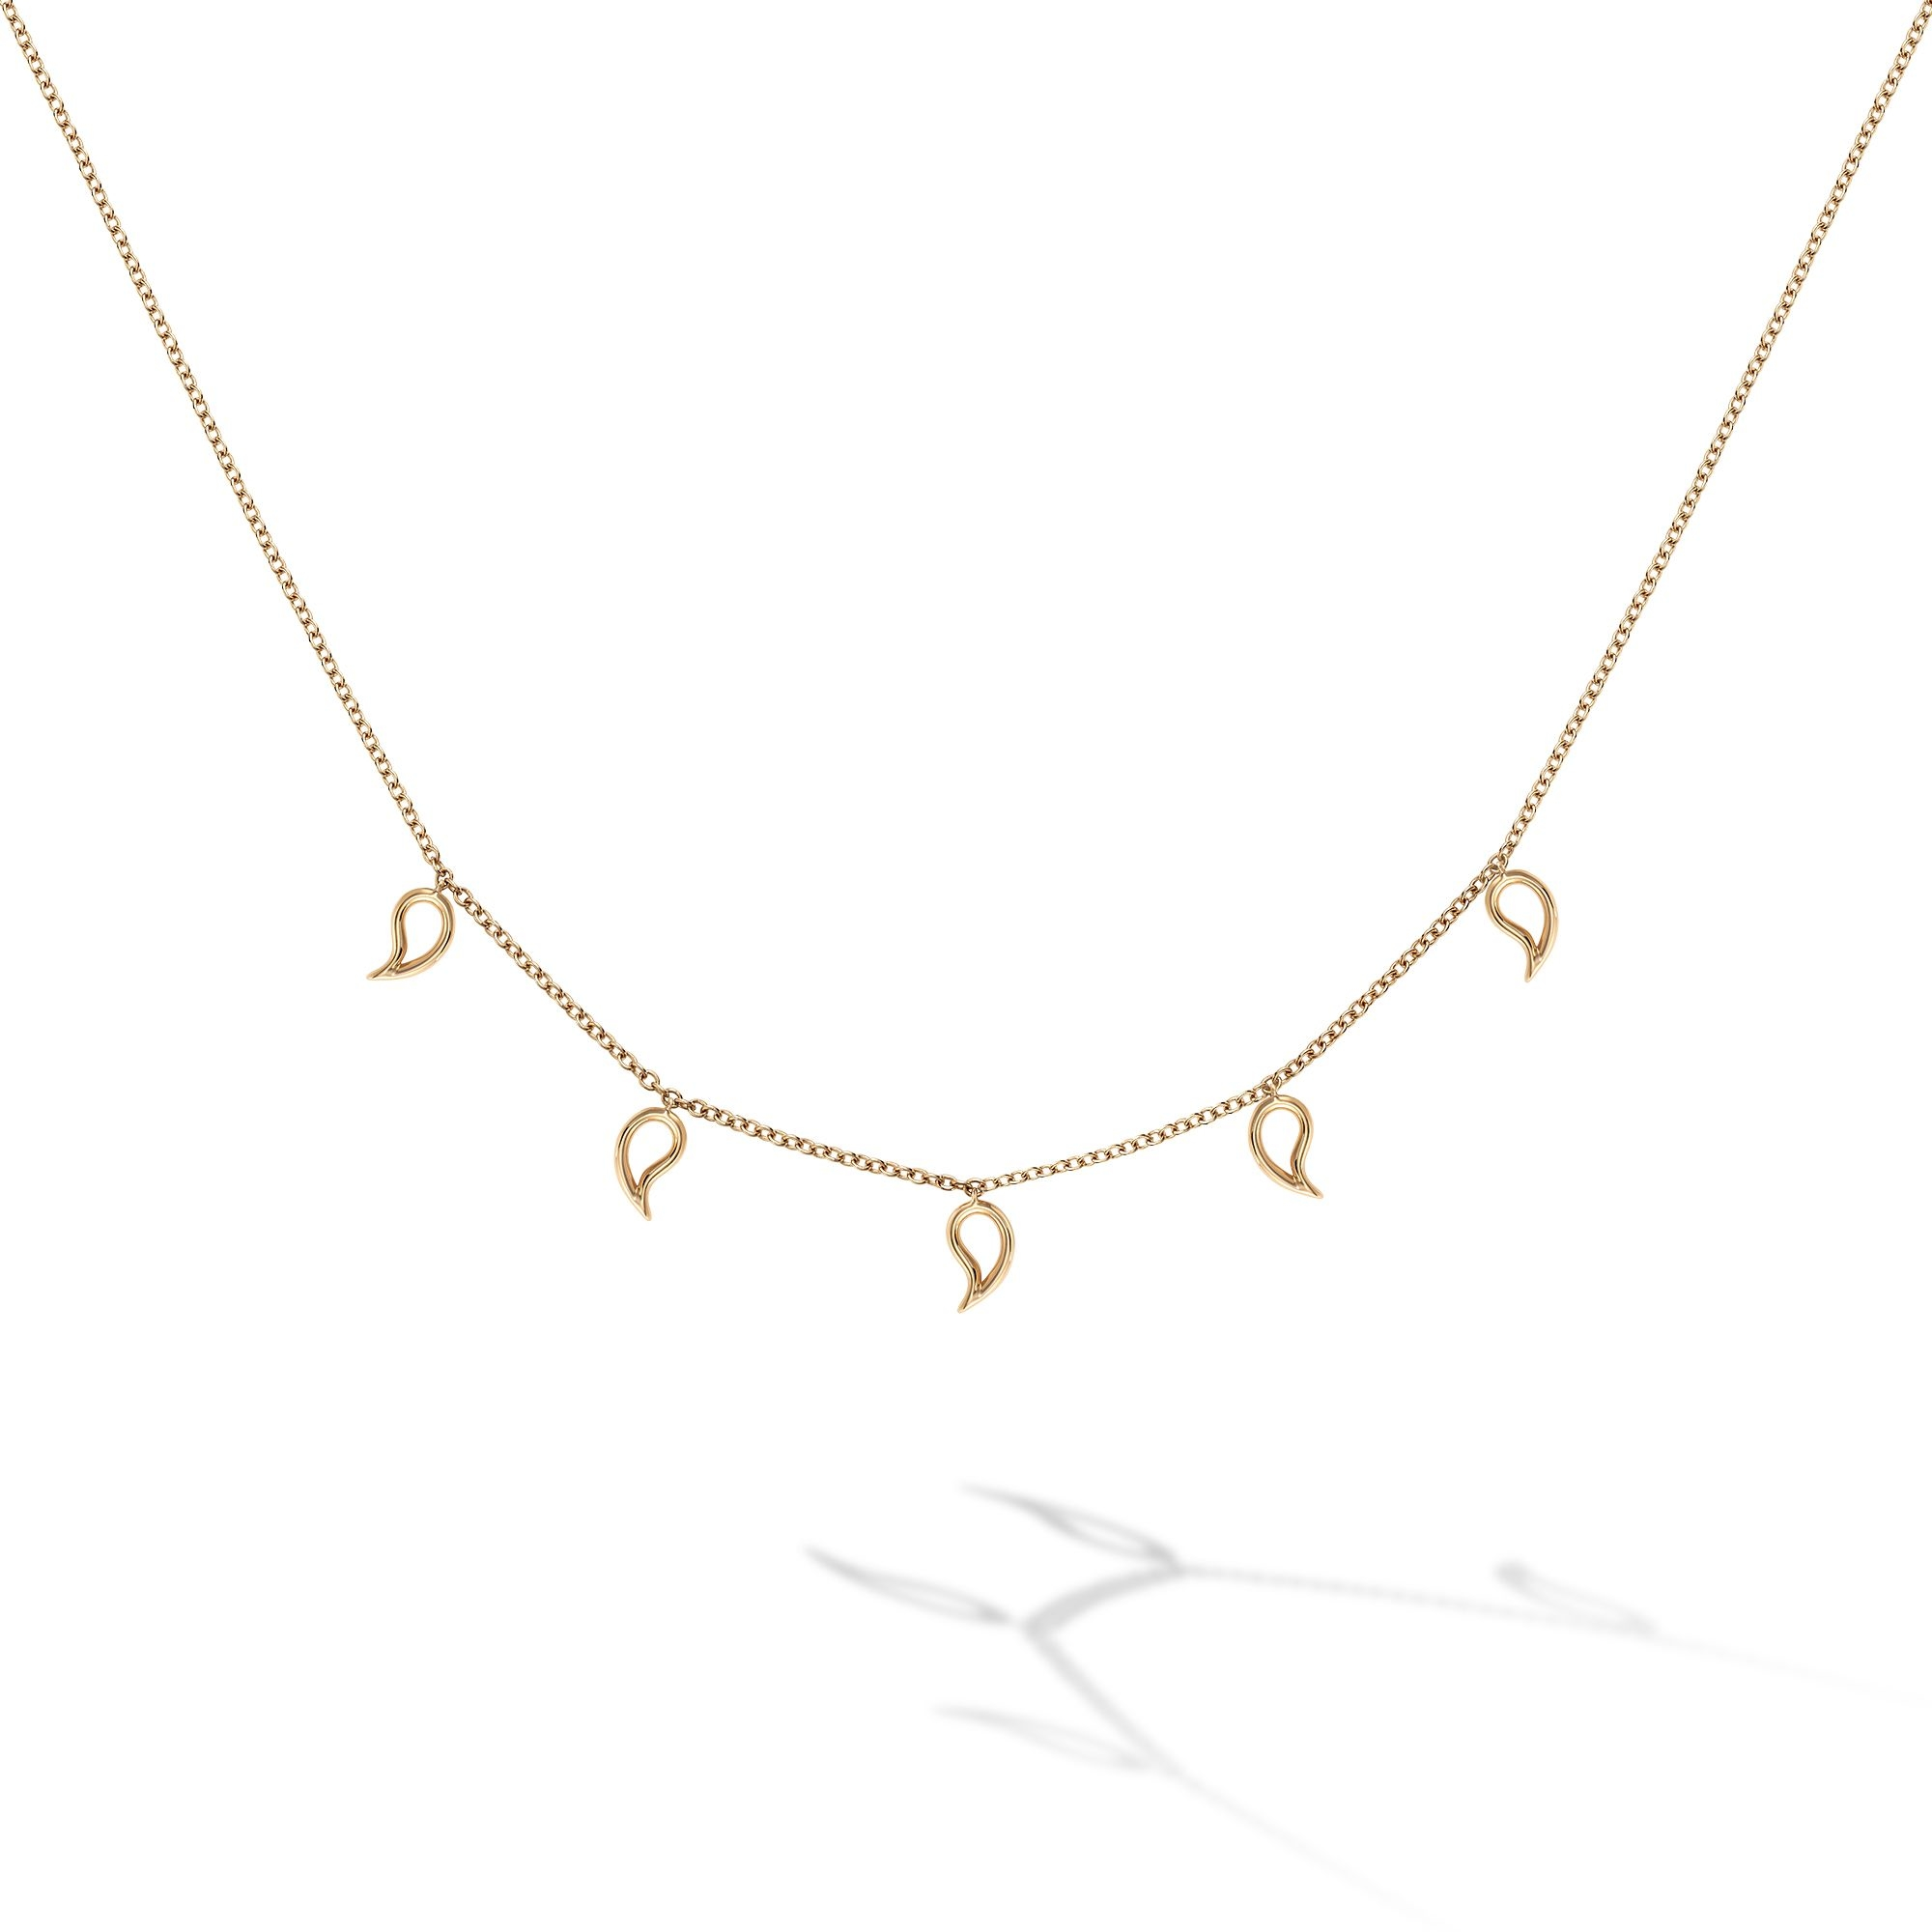 Birks 18K Yellow Gold    Gold Necklace 450013991114